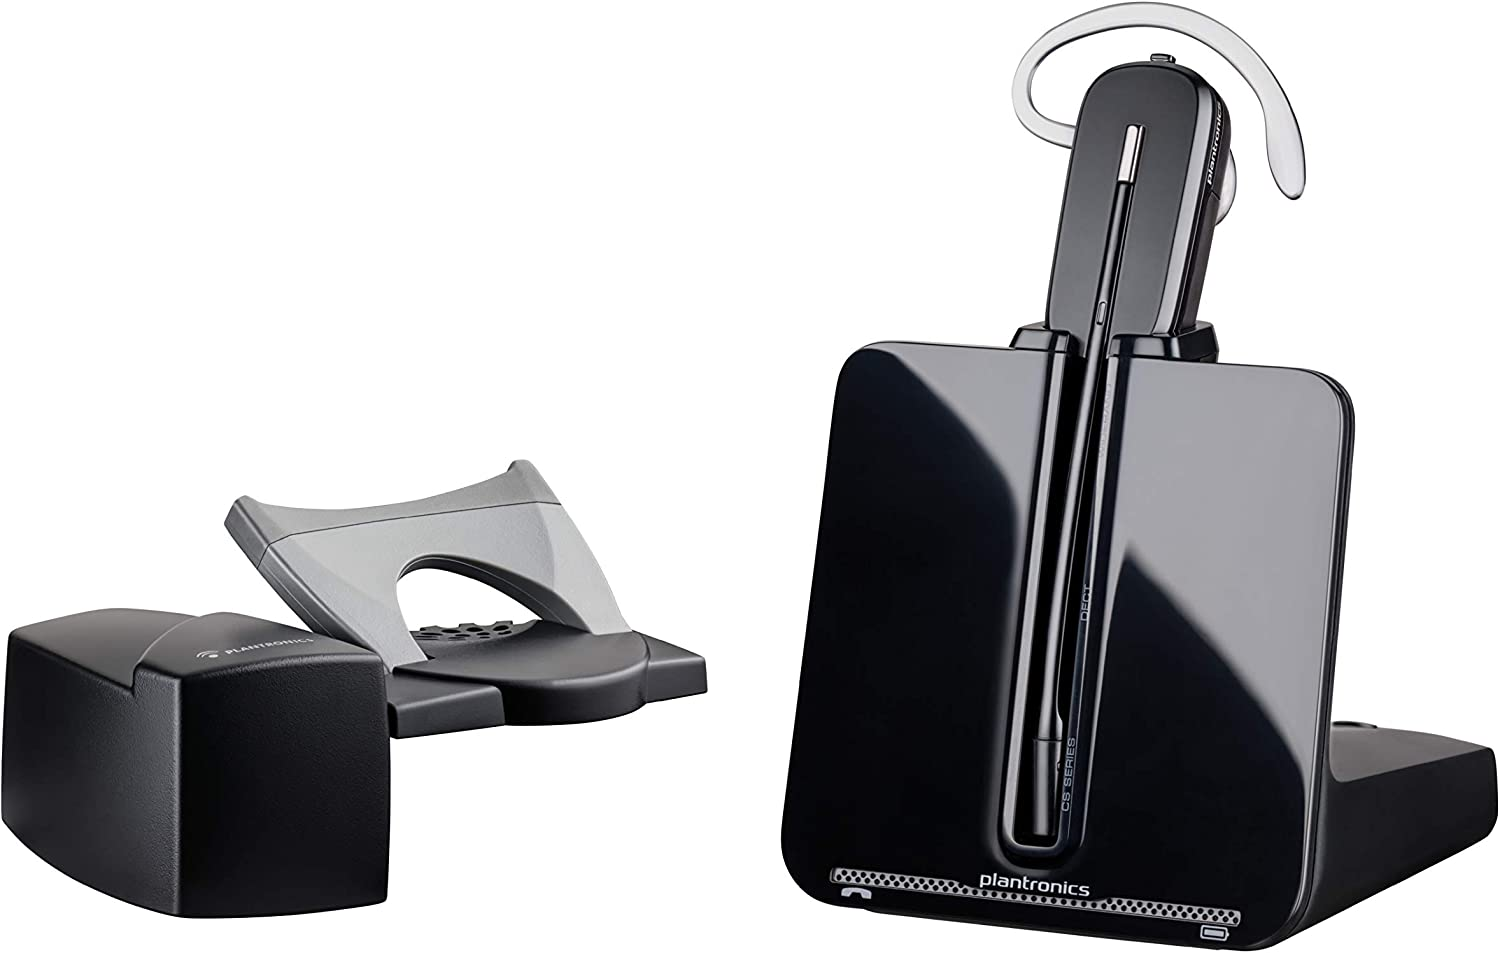 Plantronics - CS540 Wireless DECT Headset with Lifter (Poly) - Single Ear (Mono) Convertible (3 wearing styles) - Connects to Desk Phone - Noise Canceling Microphone